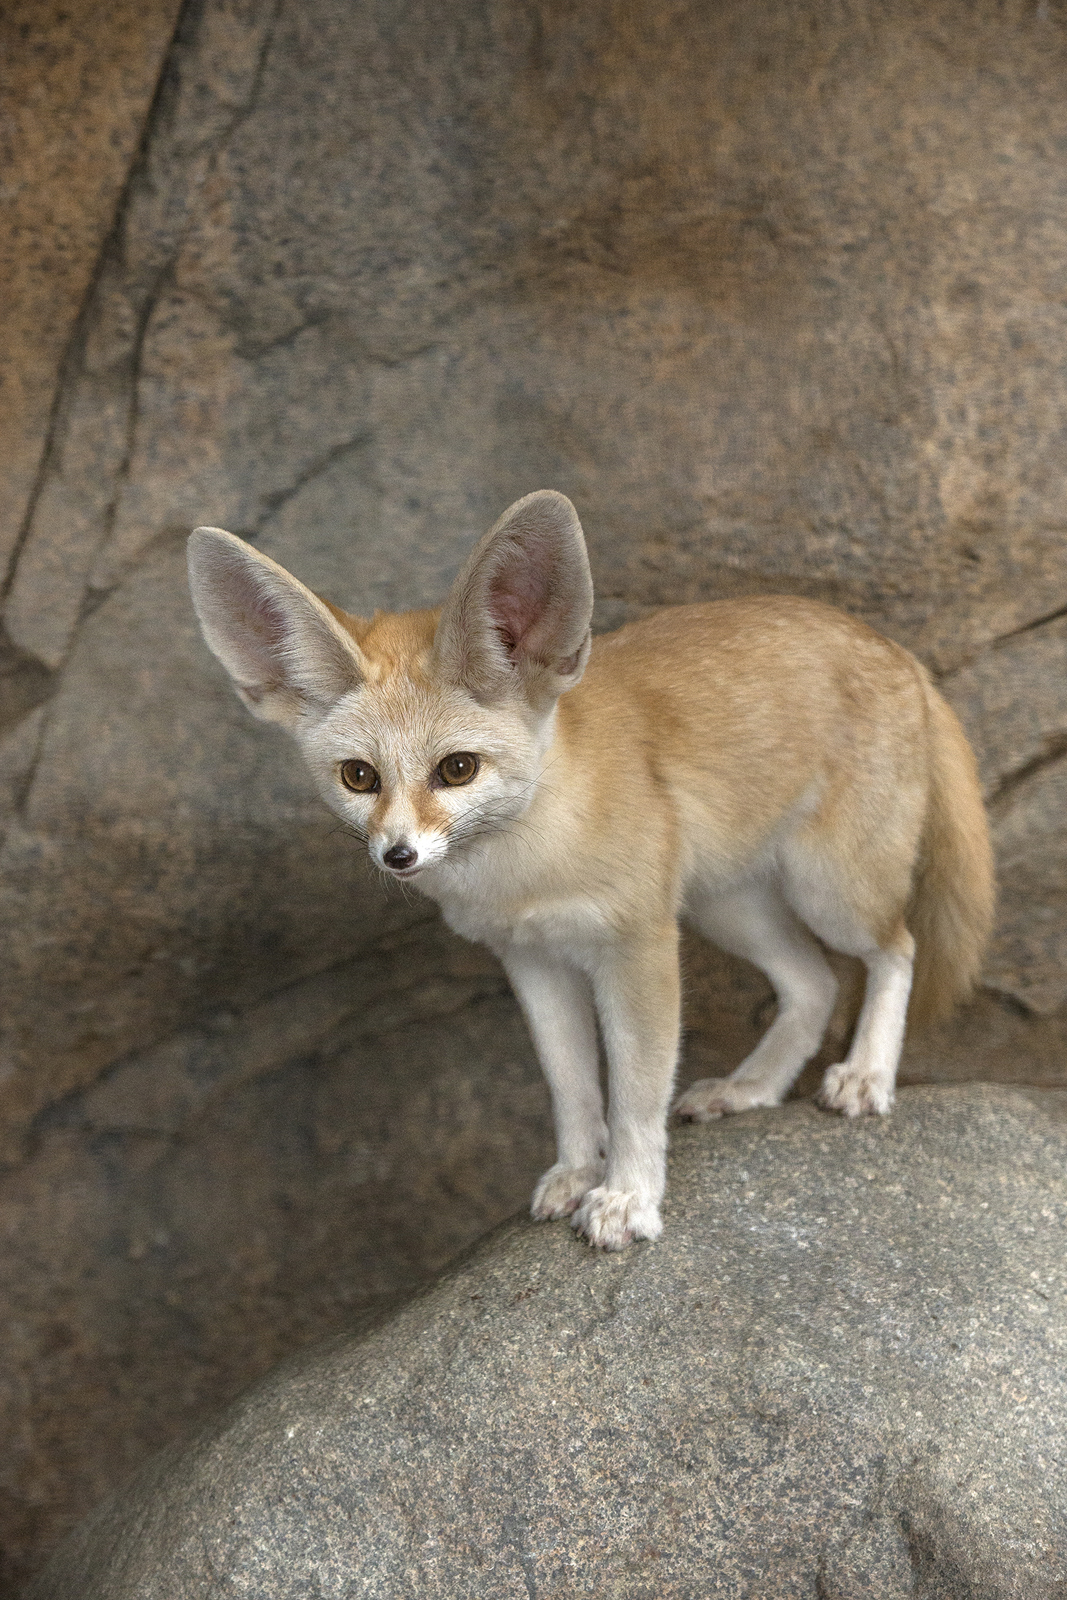 For canids, the fennec fox has the largest ears in relation to its body size. The ears can be half the length of its body, and they do double duty—allowing the fox to hear prey moving around underground, and also helping to dissipate heat under the hot desert sun.